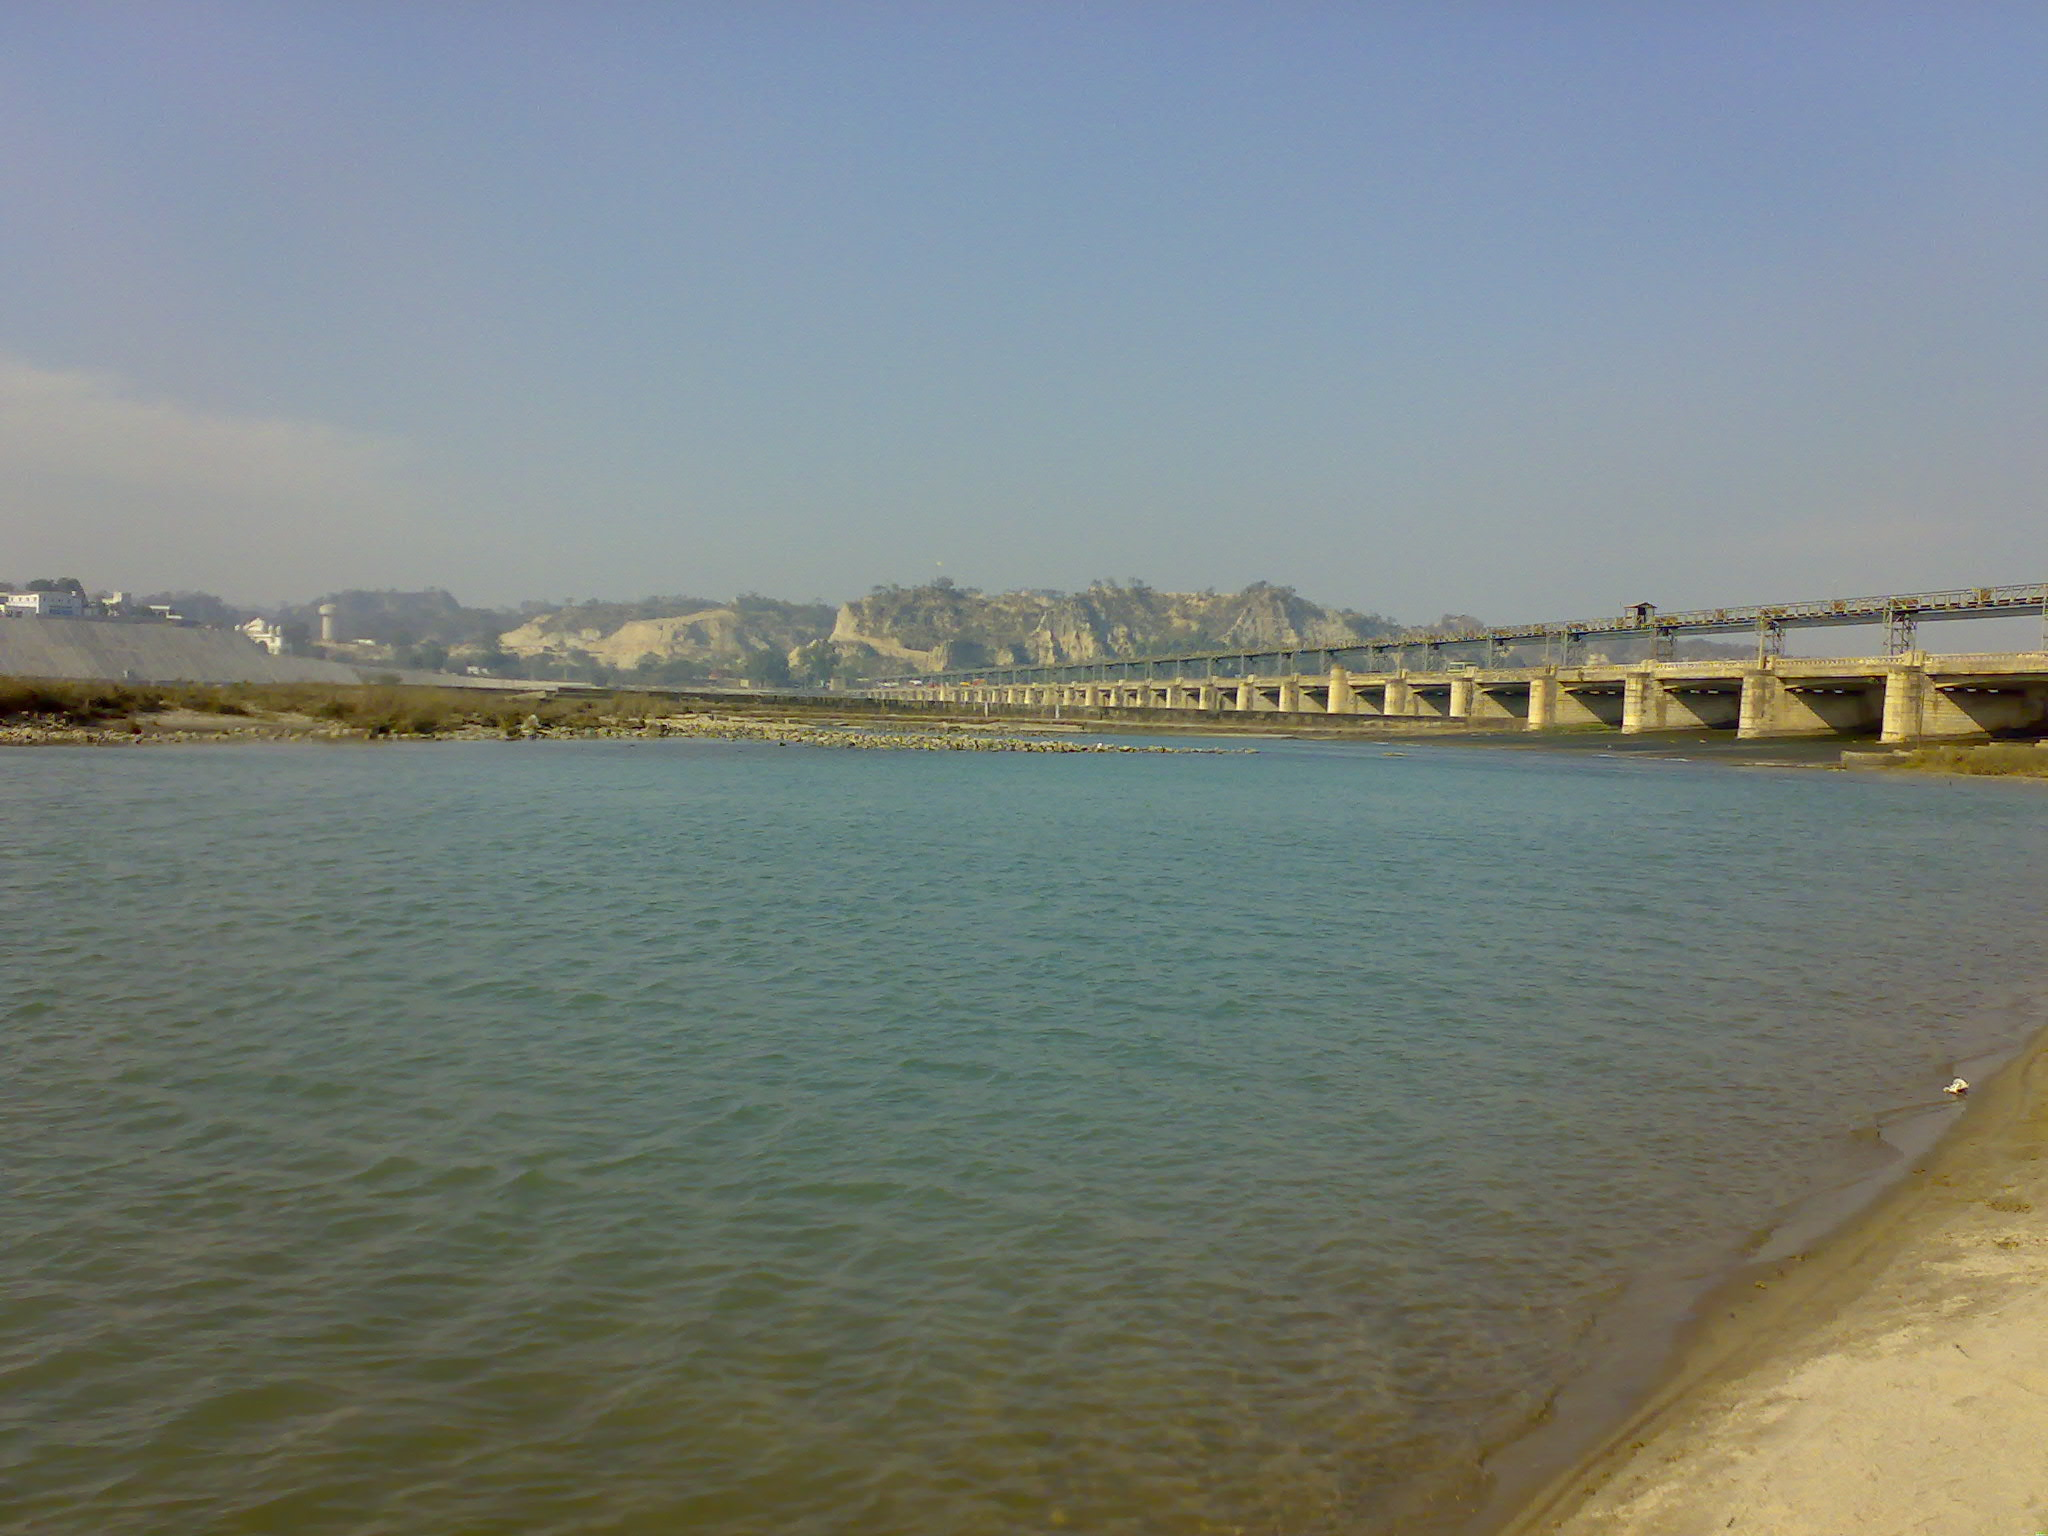 The Sutlej River.